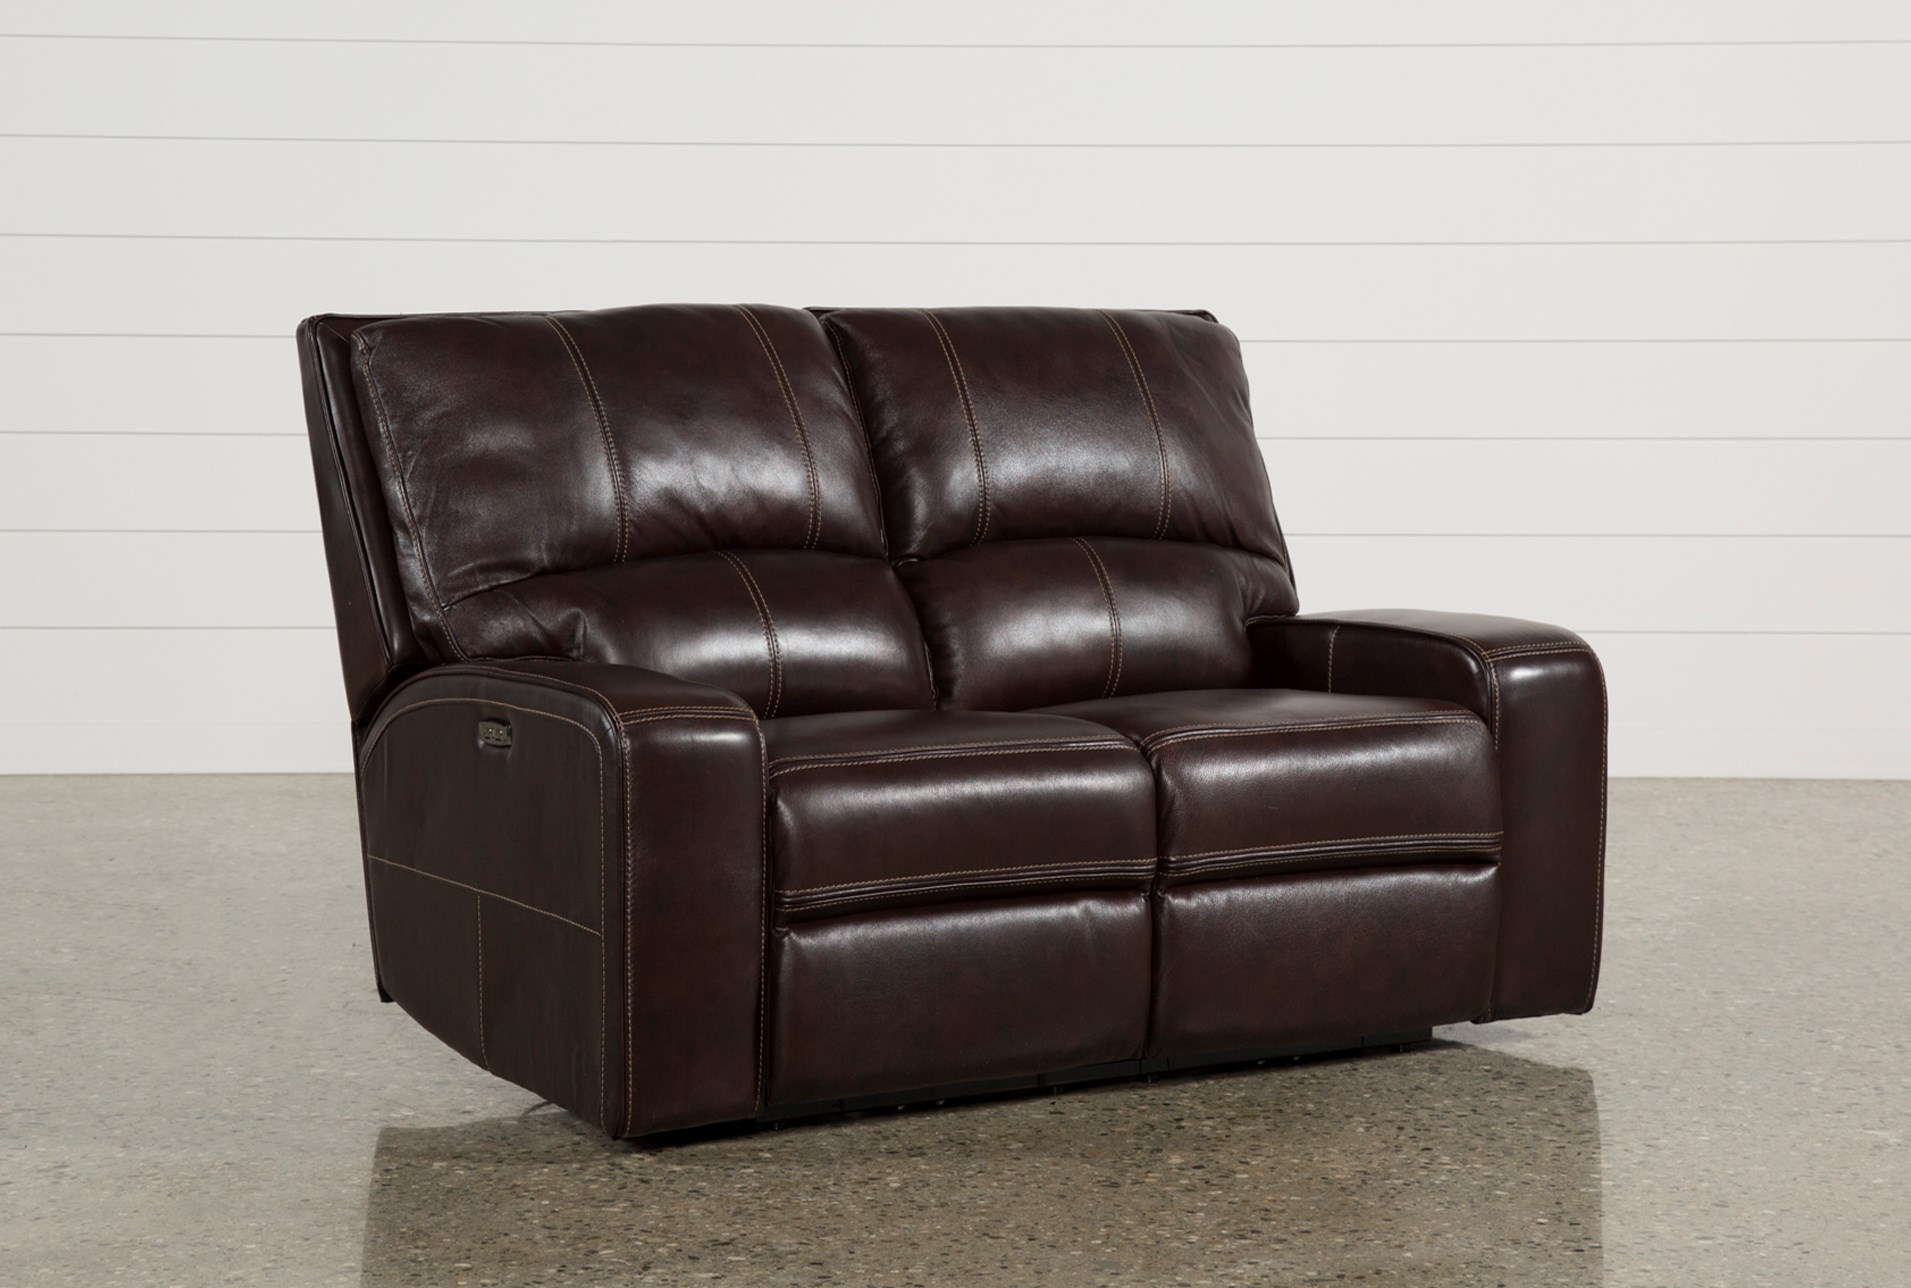 loveseat open leather room home angle furniture living reclining zone reclined ultimate